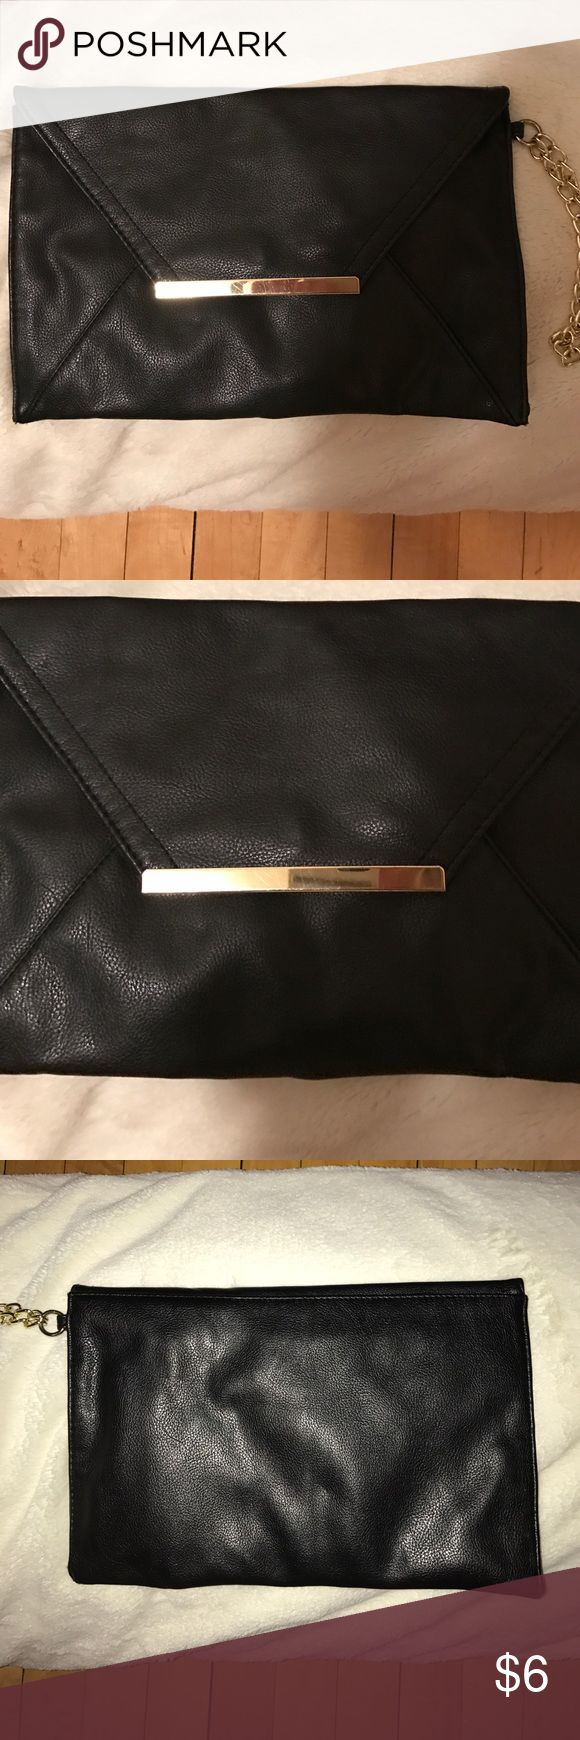 """Forever 21 Clutch Forever 21 black Clutch, gold details. Gold chain on side for wrist. Envelope style. 12"""" by 8"""" Forever 21 Bags Clutches & Wristlets"""